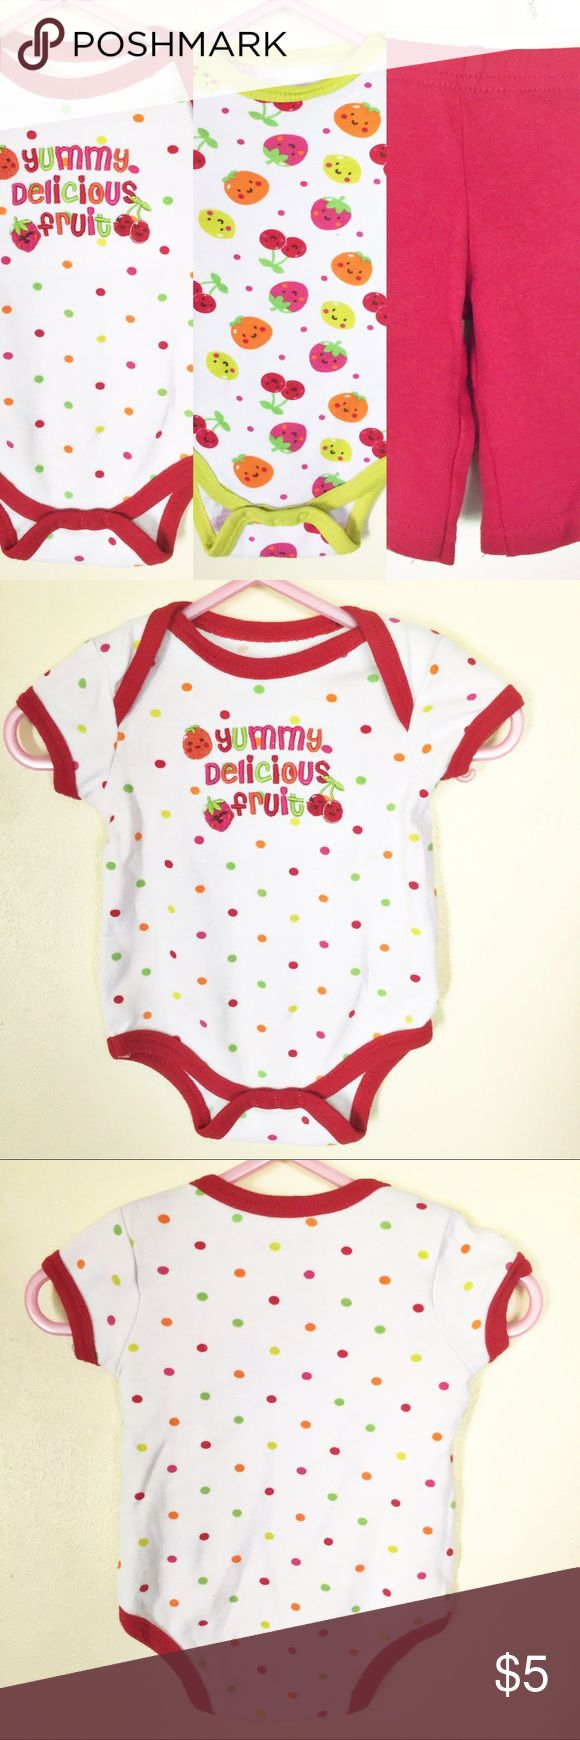 Set of 2 Onesies/Bodysuits & Matching Pants NWOT Set of 2 fruit themed onesies and matching red pants. Super cute! Check out the photos to see detail of each piece. These were never worn. 0-3 Months. From Wee Play, makers of Carter's. 100% cotton wee play Matching Sets